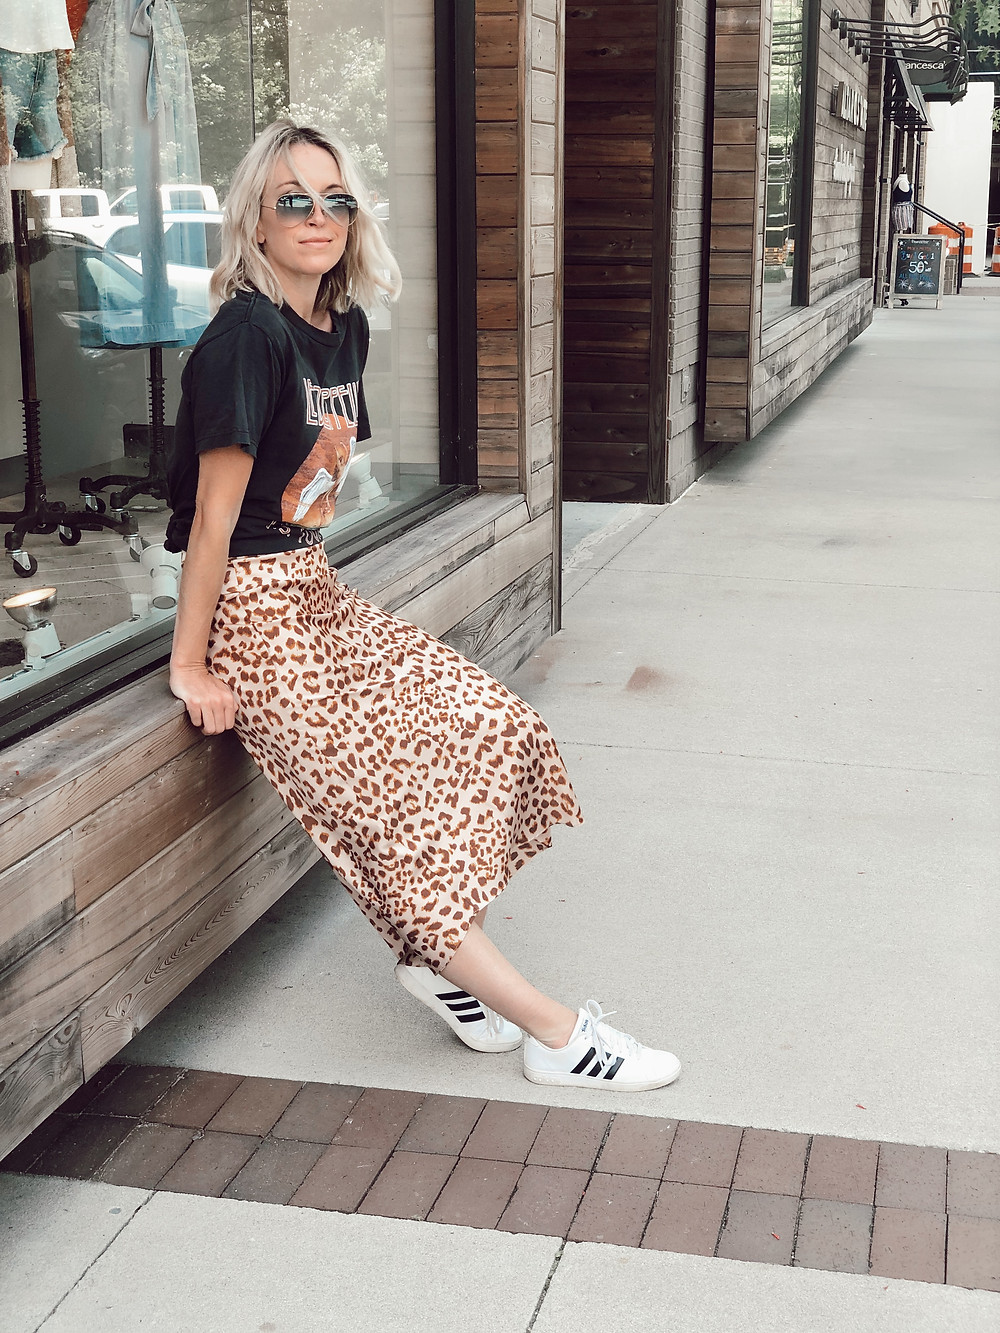 Mom style, skirt and sneakers, weekend outfit, leopard print midi skirt, Led Zeppelin t-shirt, Adidas sneakers, boho chic style, free people outfit